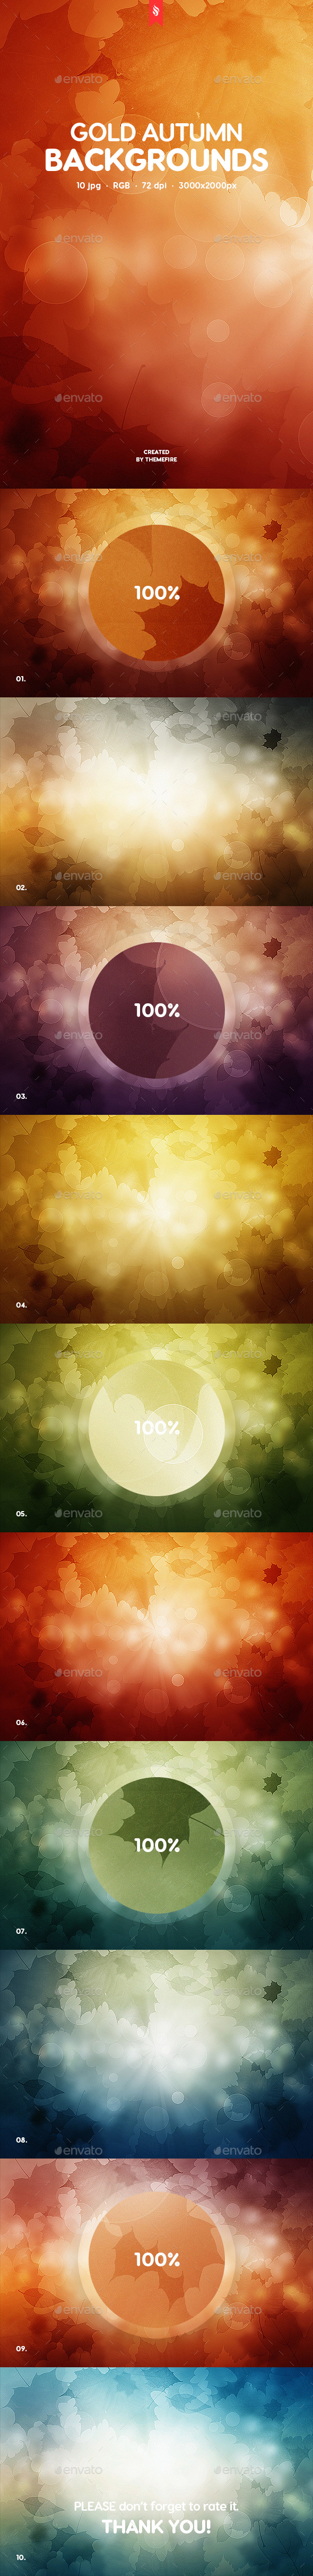 Gold Autumn Backgrounds - Nature Backgrounds